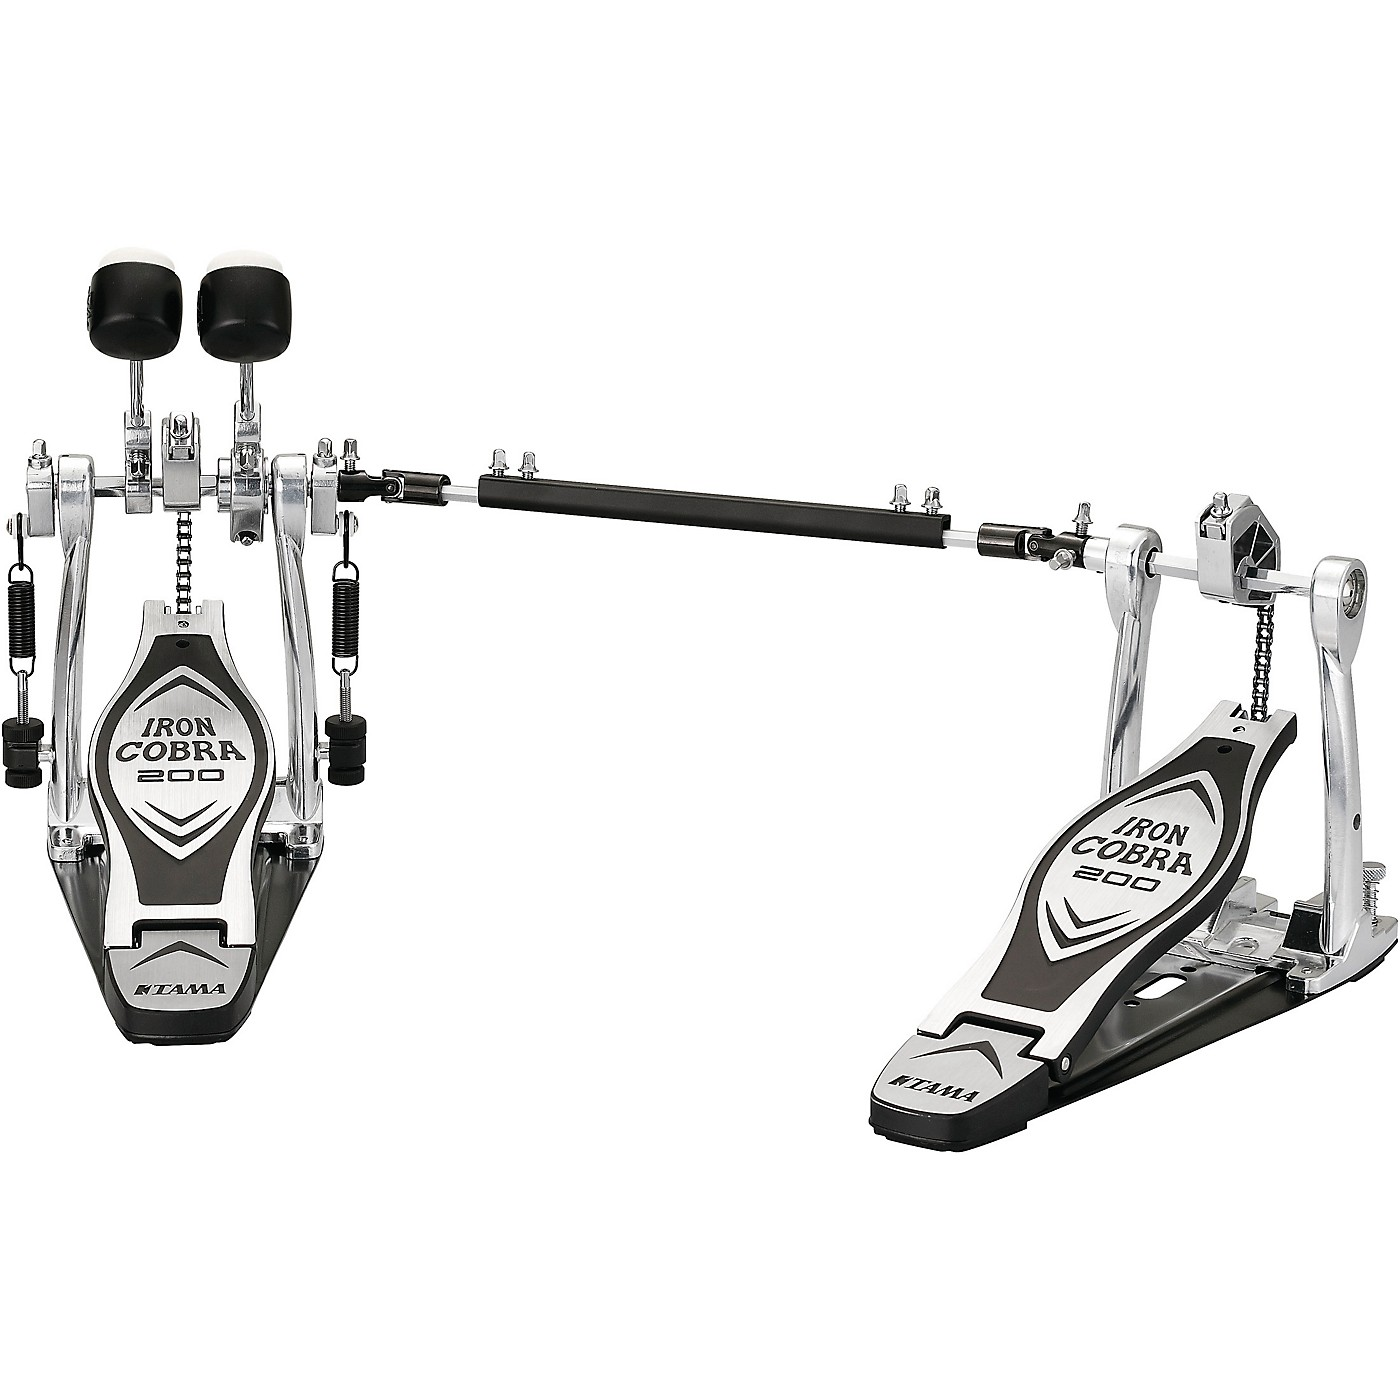 TAMA Iron Cobra 200 Left-Footed Double Bass Drum Pedal thumbnail